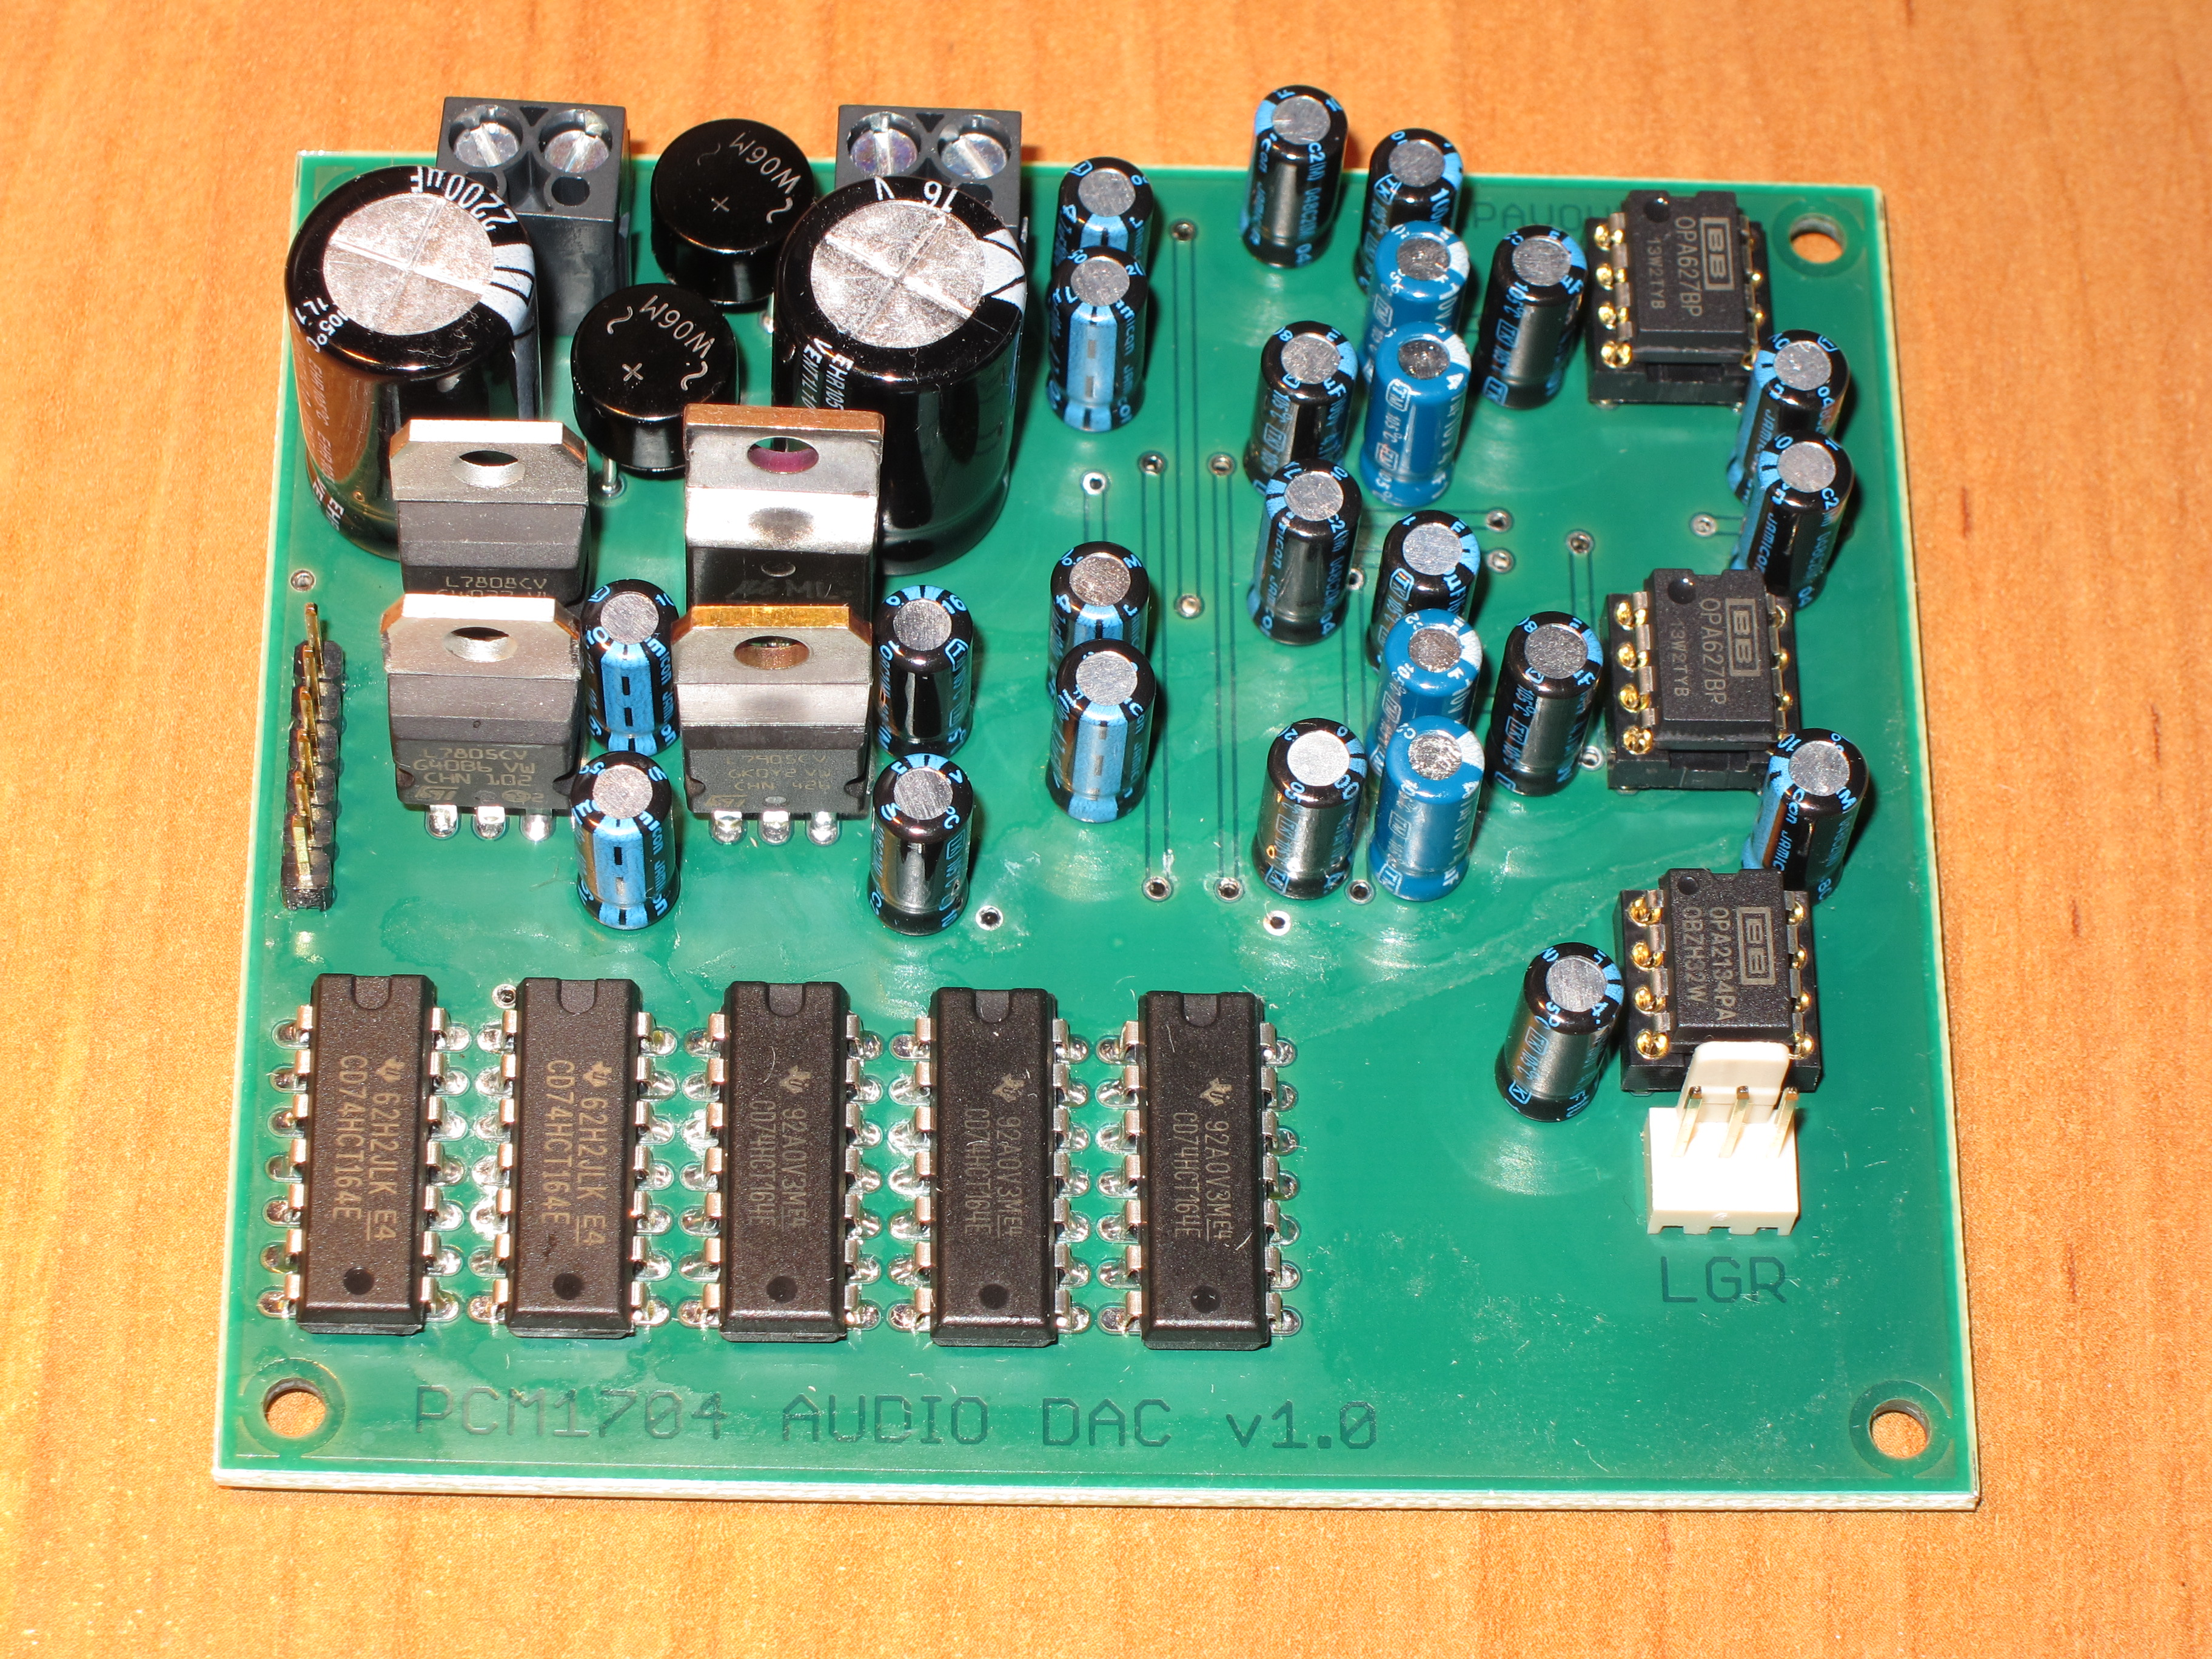 DAC with two PCM1704